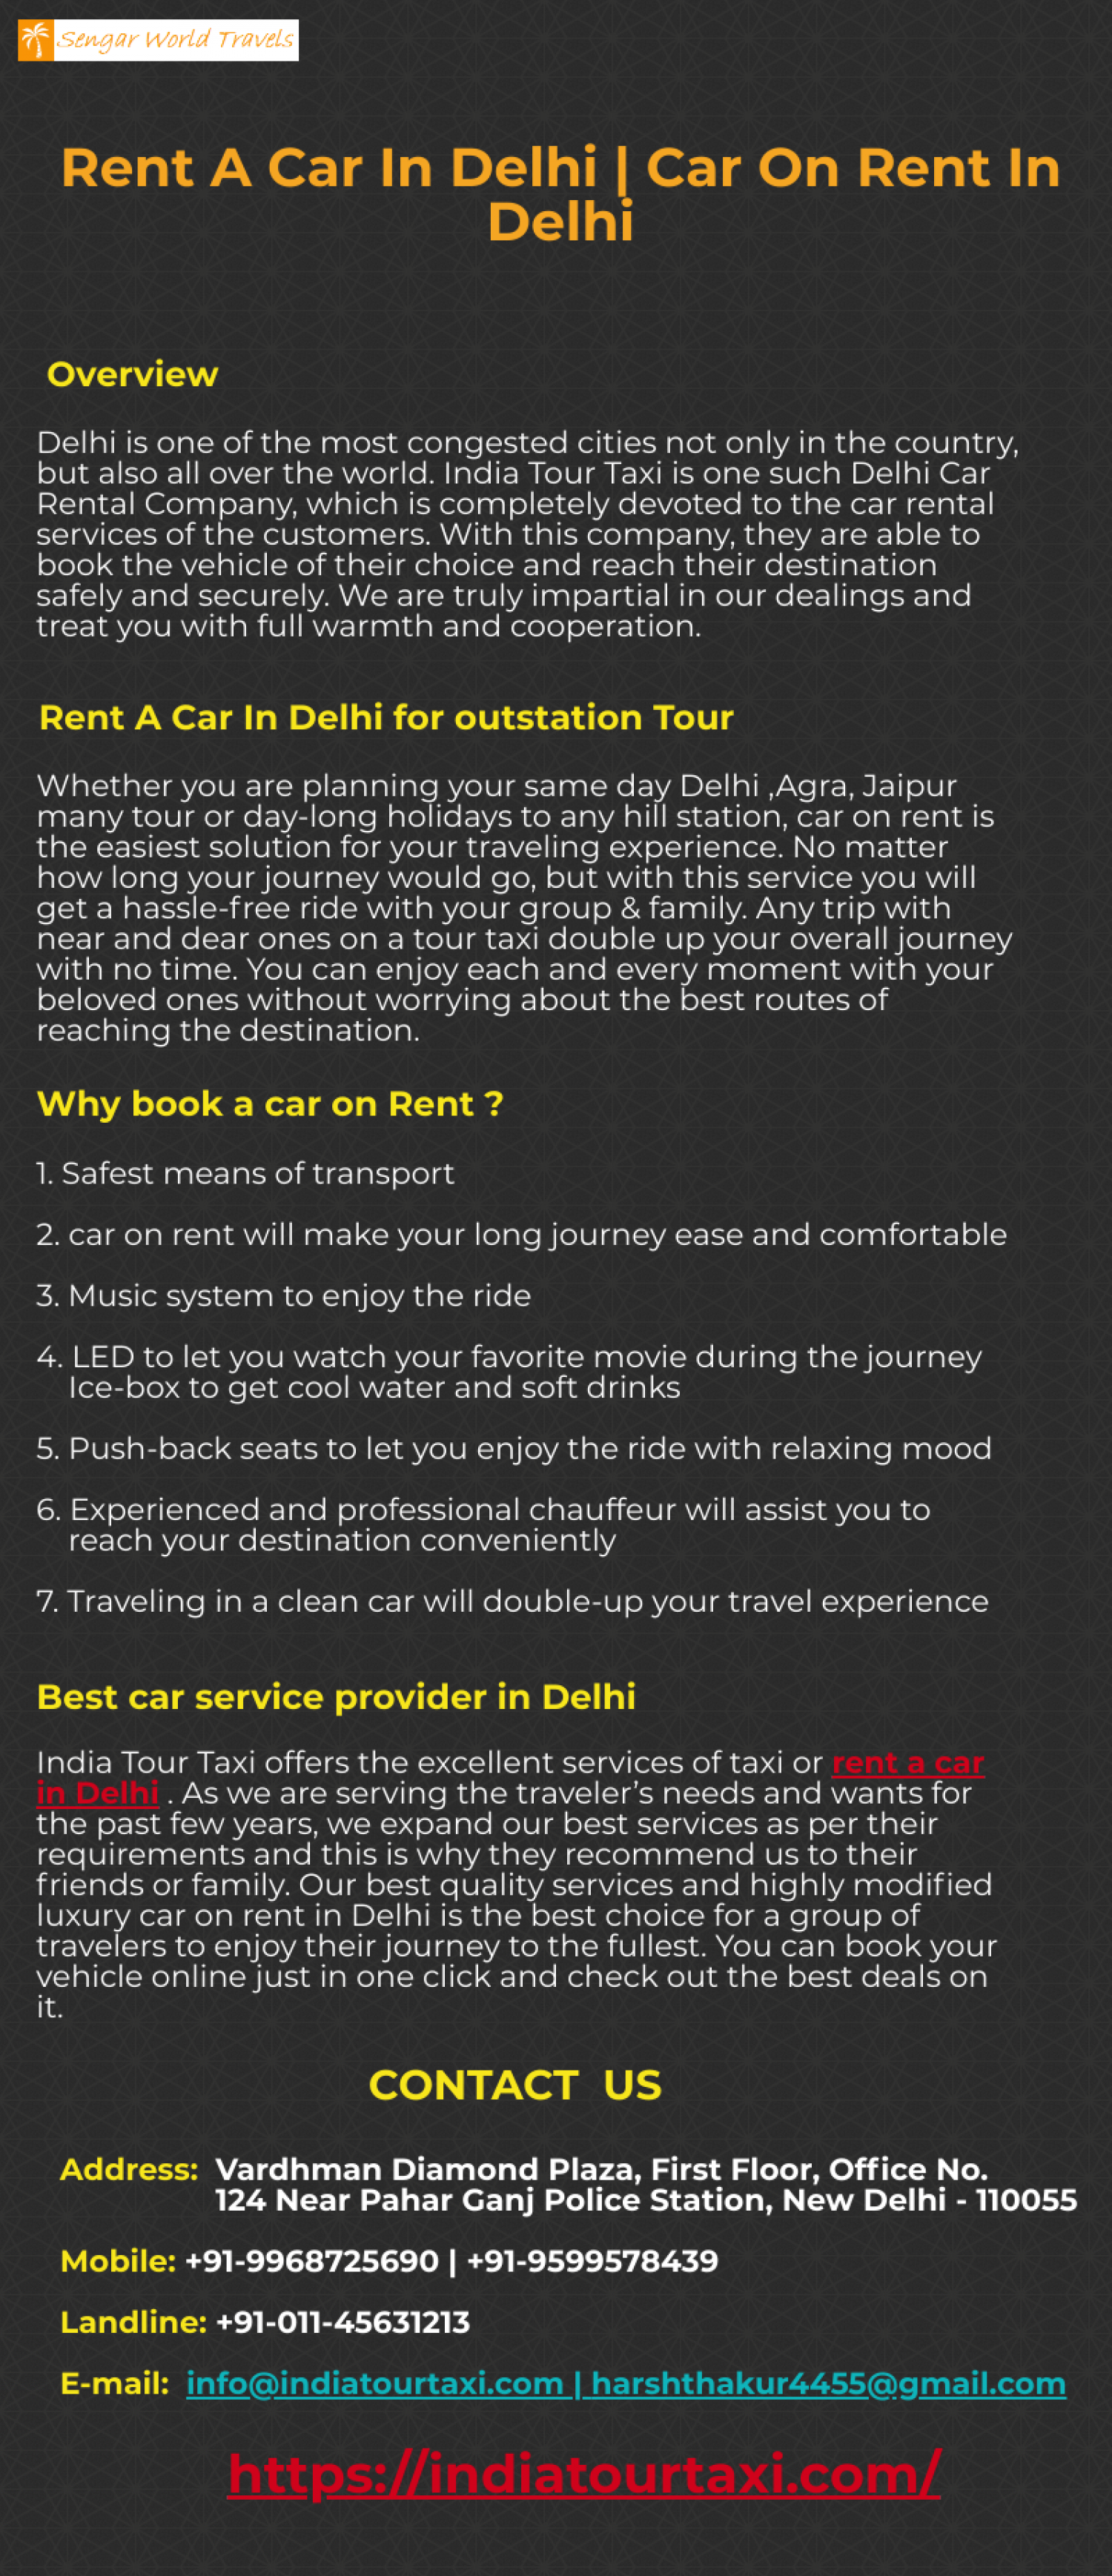 Rent A Car In Delhi | Car on Rent In Delhi Infographic